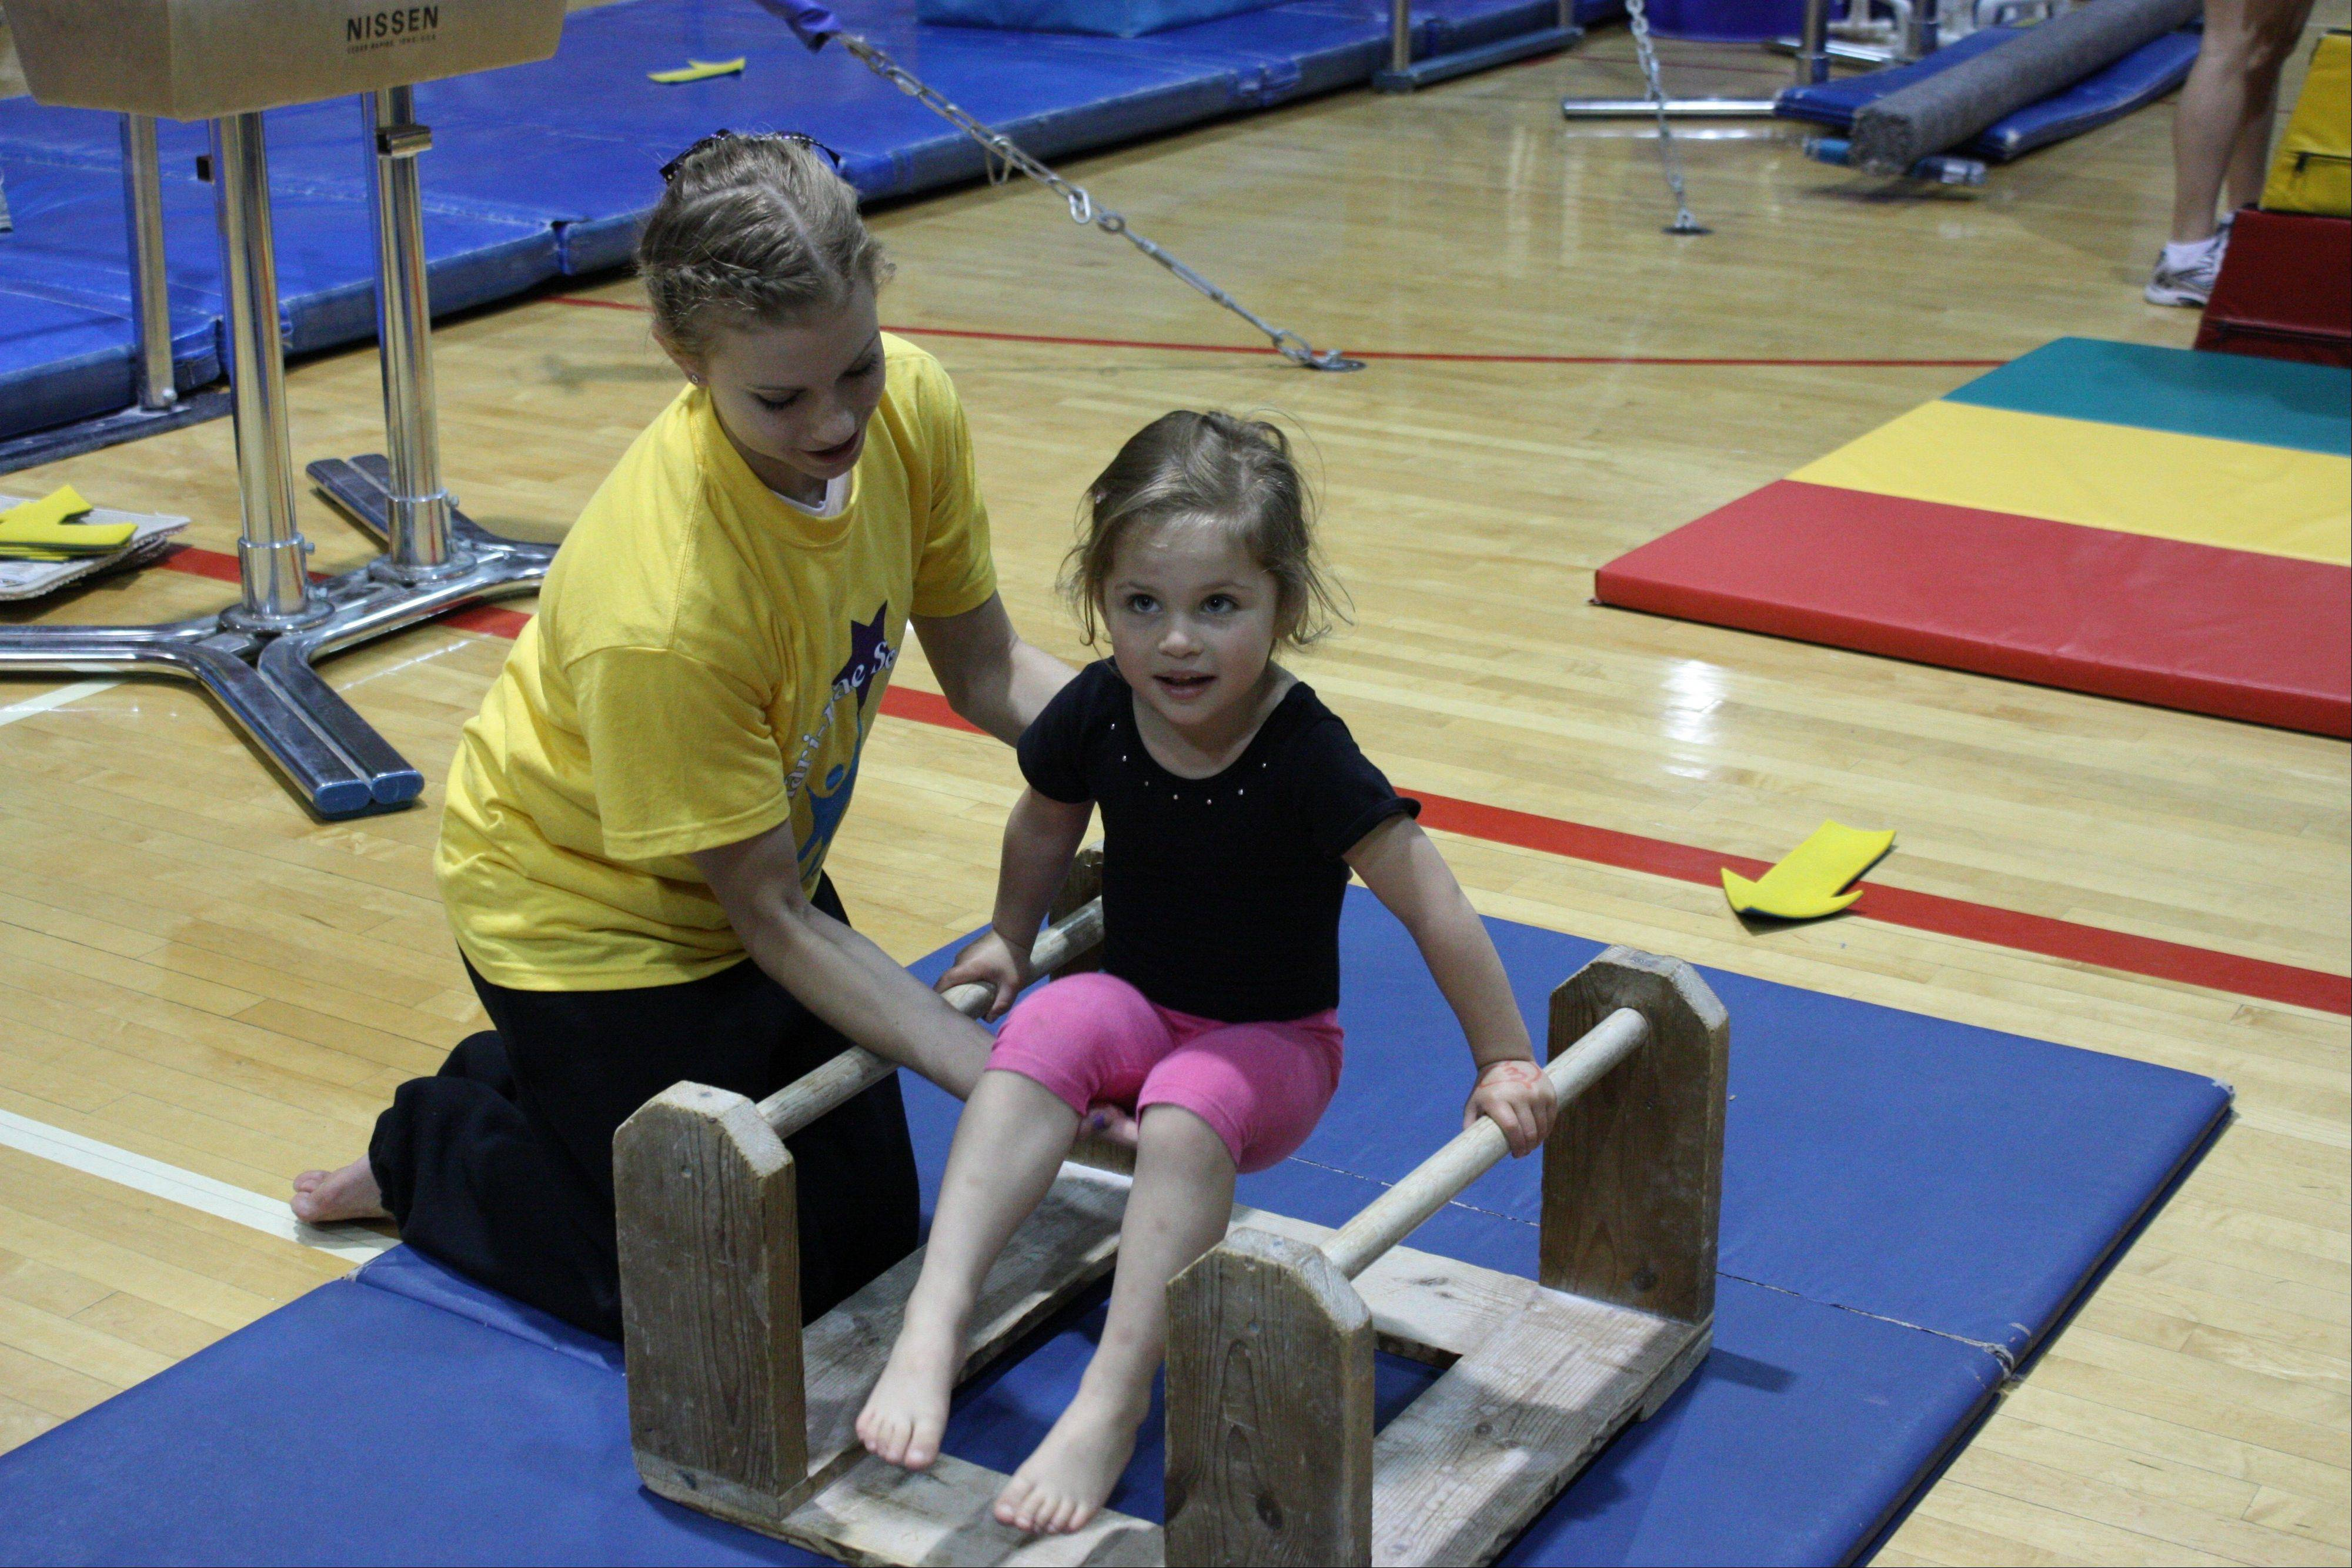 The Palatine Park District will hold Gymnastics Camp for children in grades two-eight beginning Monday, Aug. 13. For information, visit palatineparks.org.